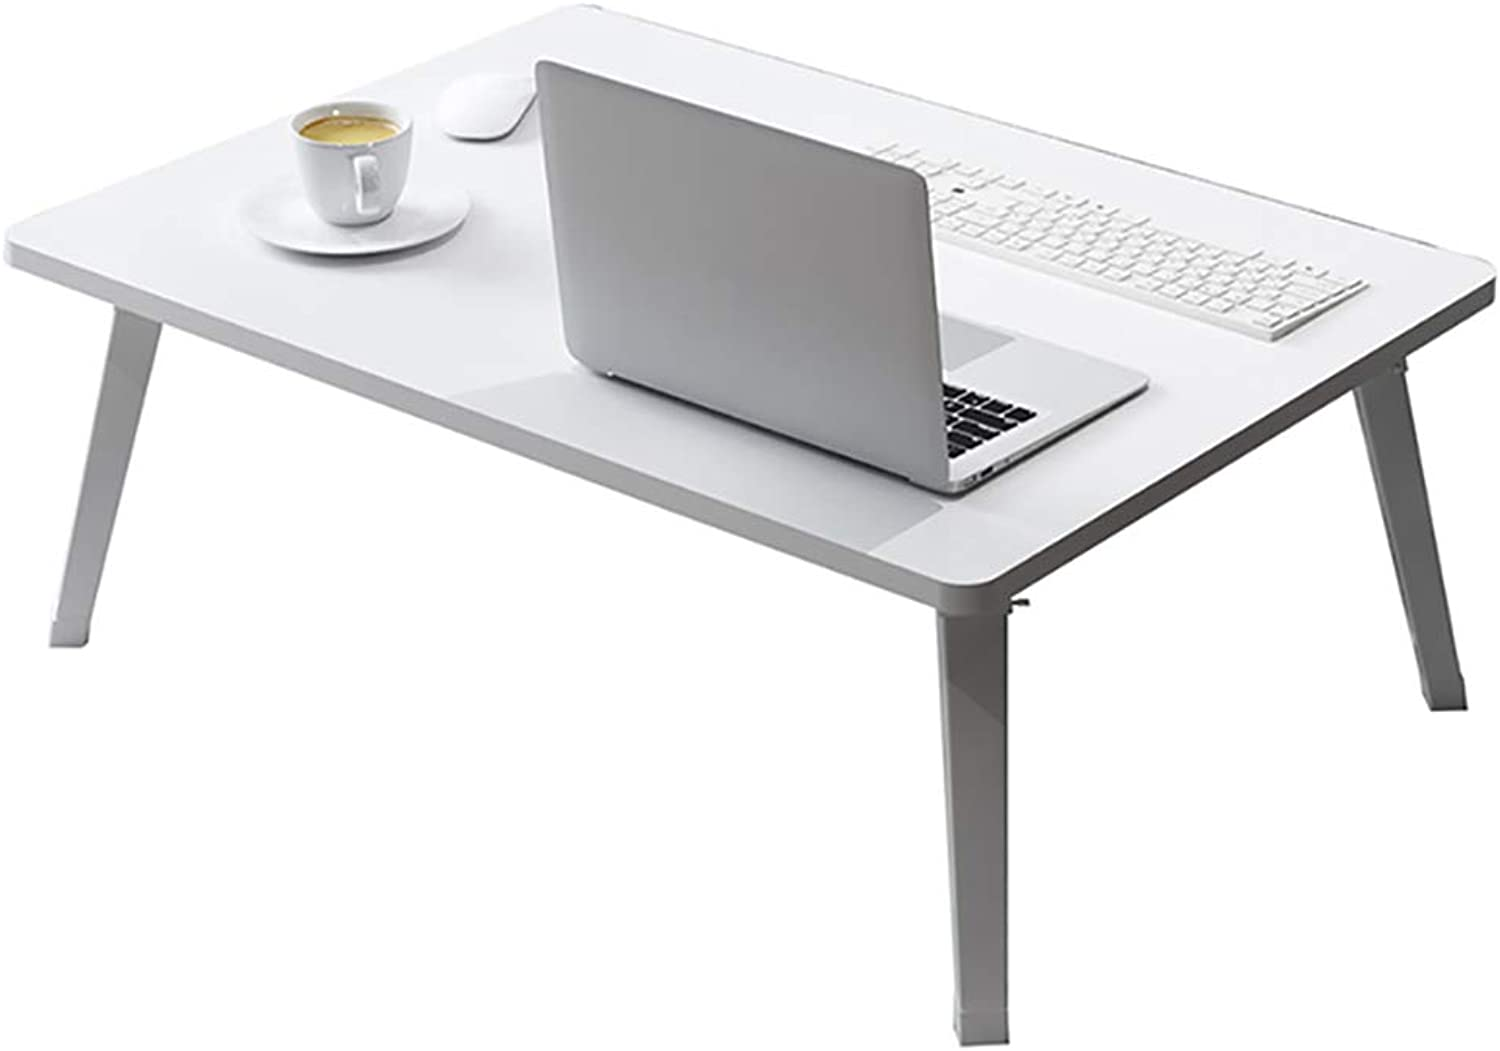 Laptop Bed Table Desk Foldable Sofa Breakfast Portable Reading Students